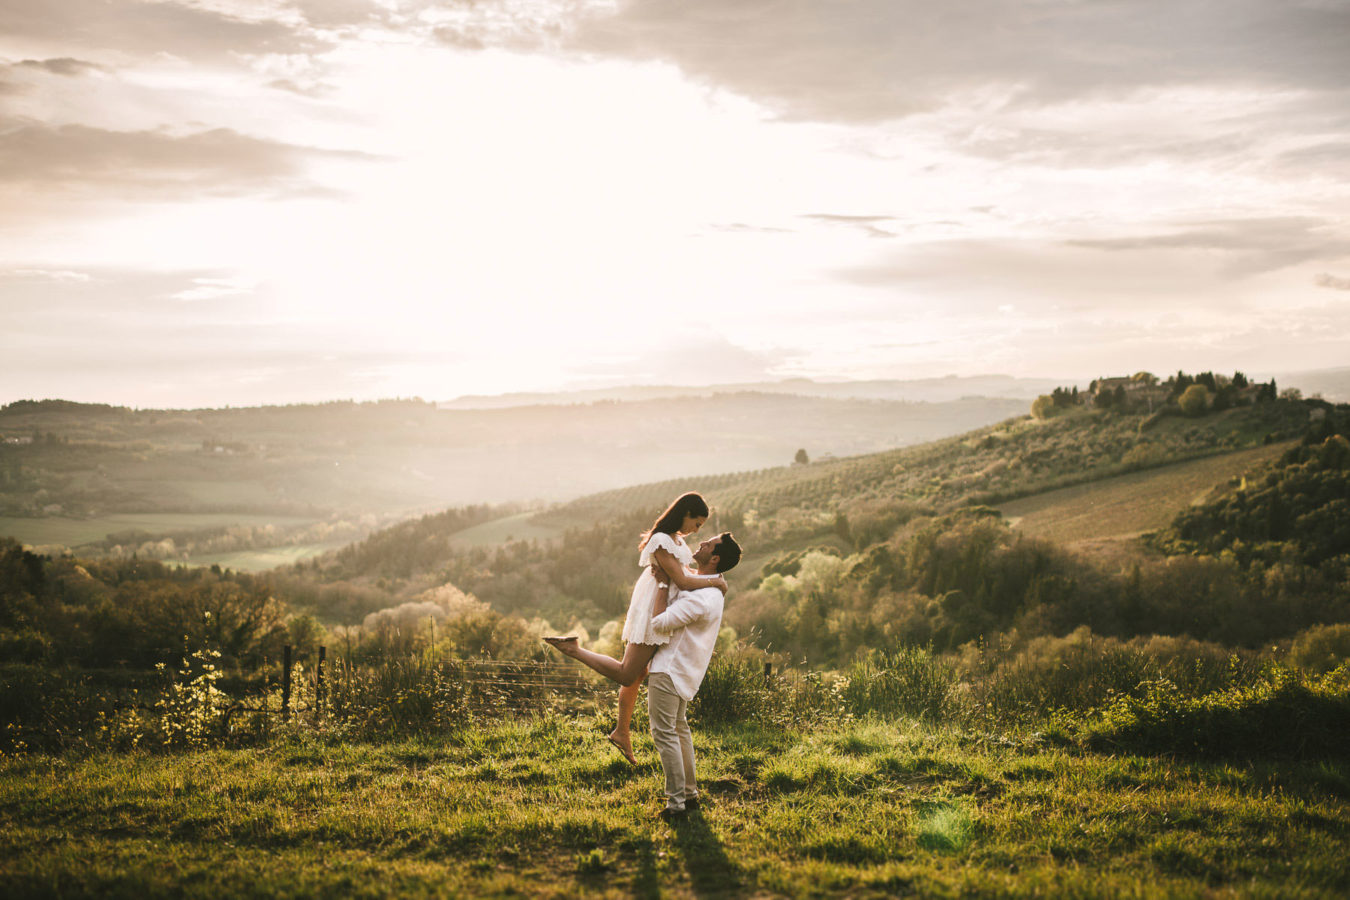 Incredible and breathtaking engagement photo session surrounded by the beauty of Tuscany countryside. Give yourself enchanting memory to cherish forever, your love deserves to be celebrated